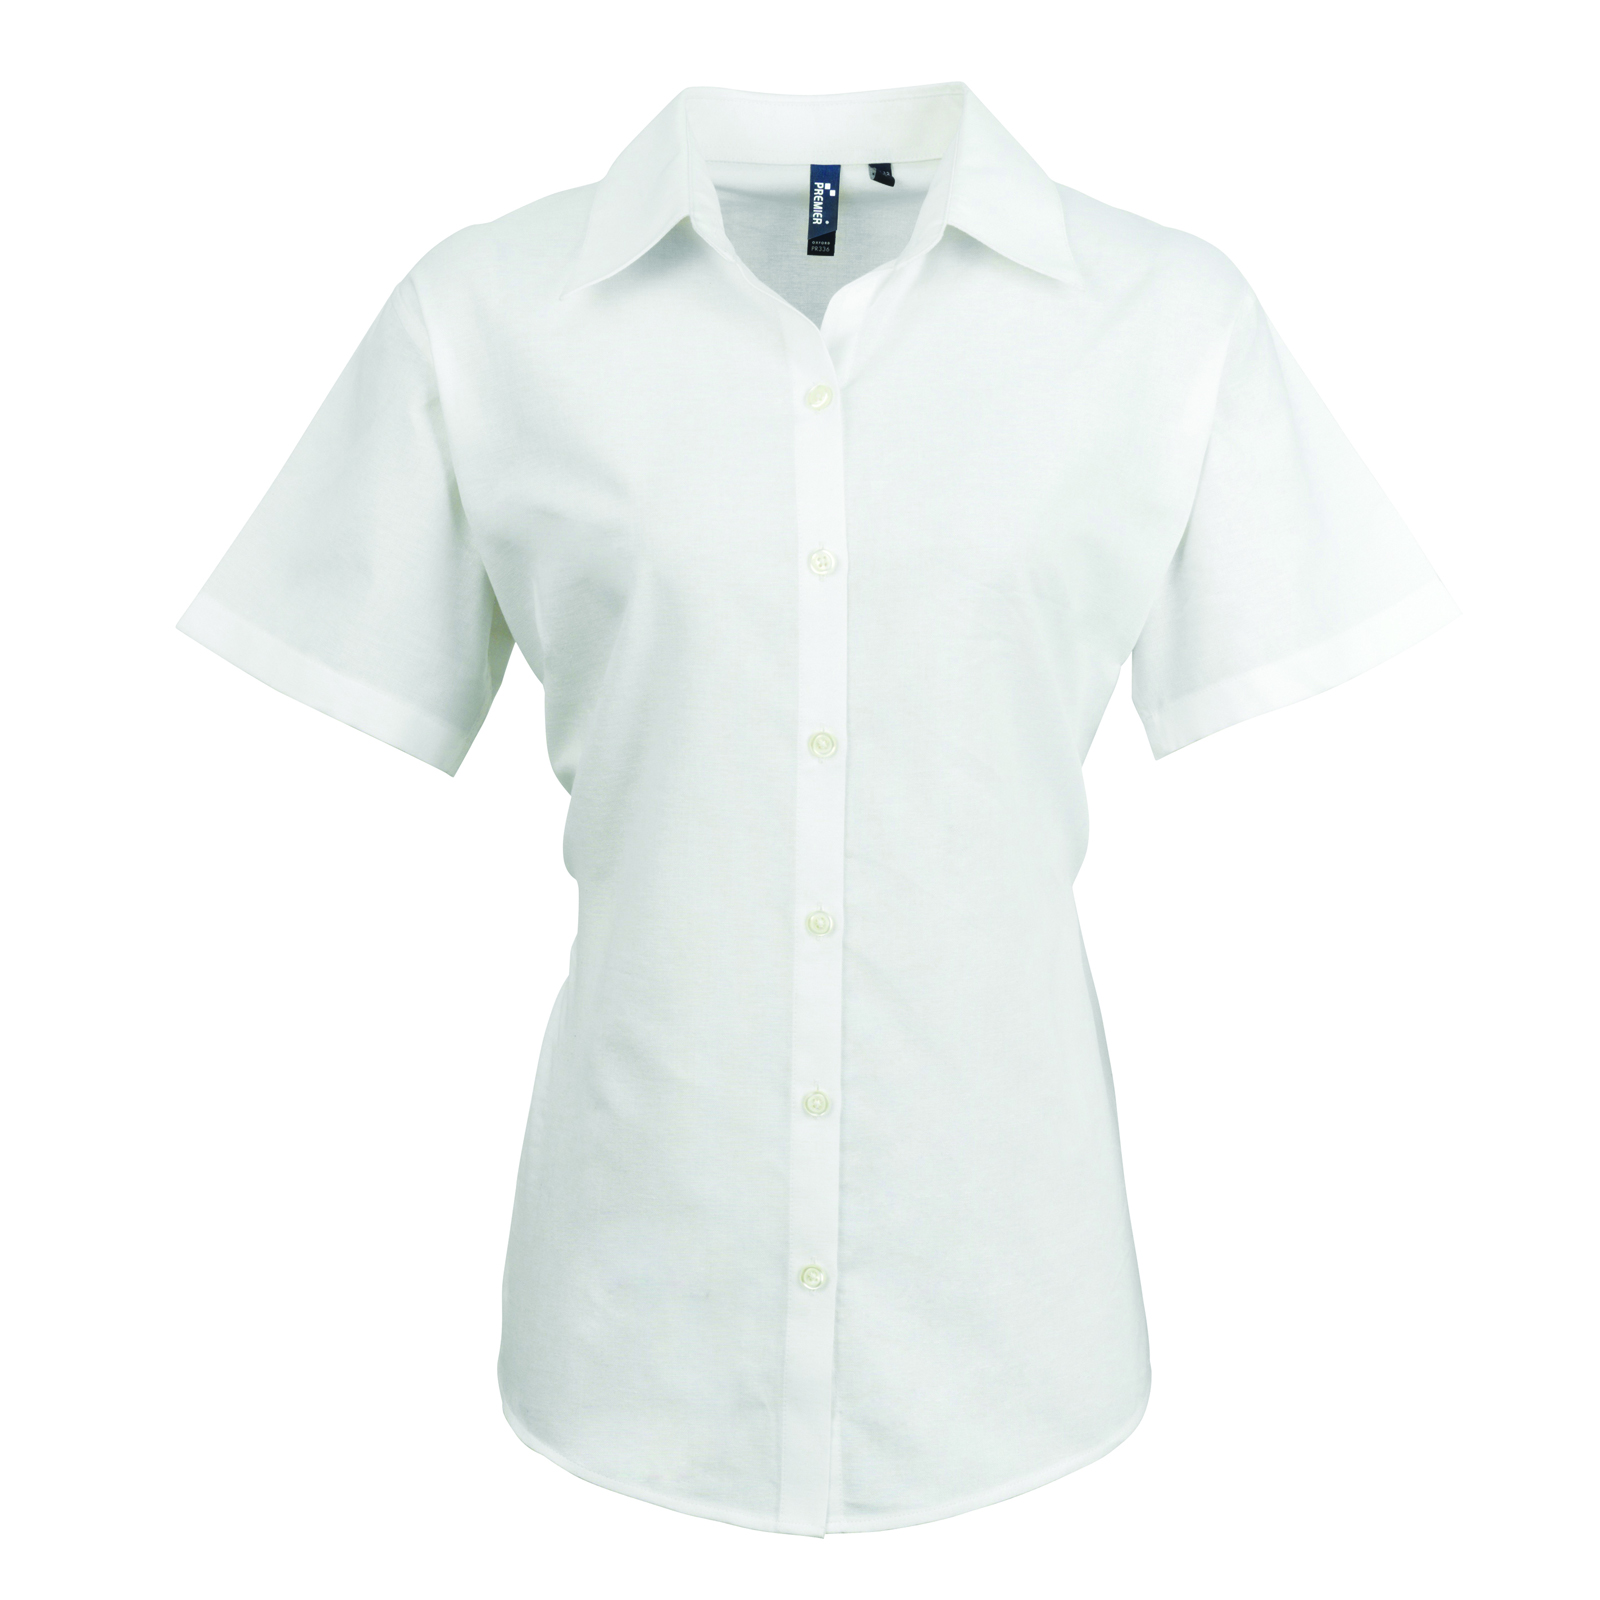 New Premier Womens Smart Oxford Ladies Short Sleeve